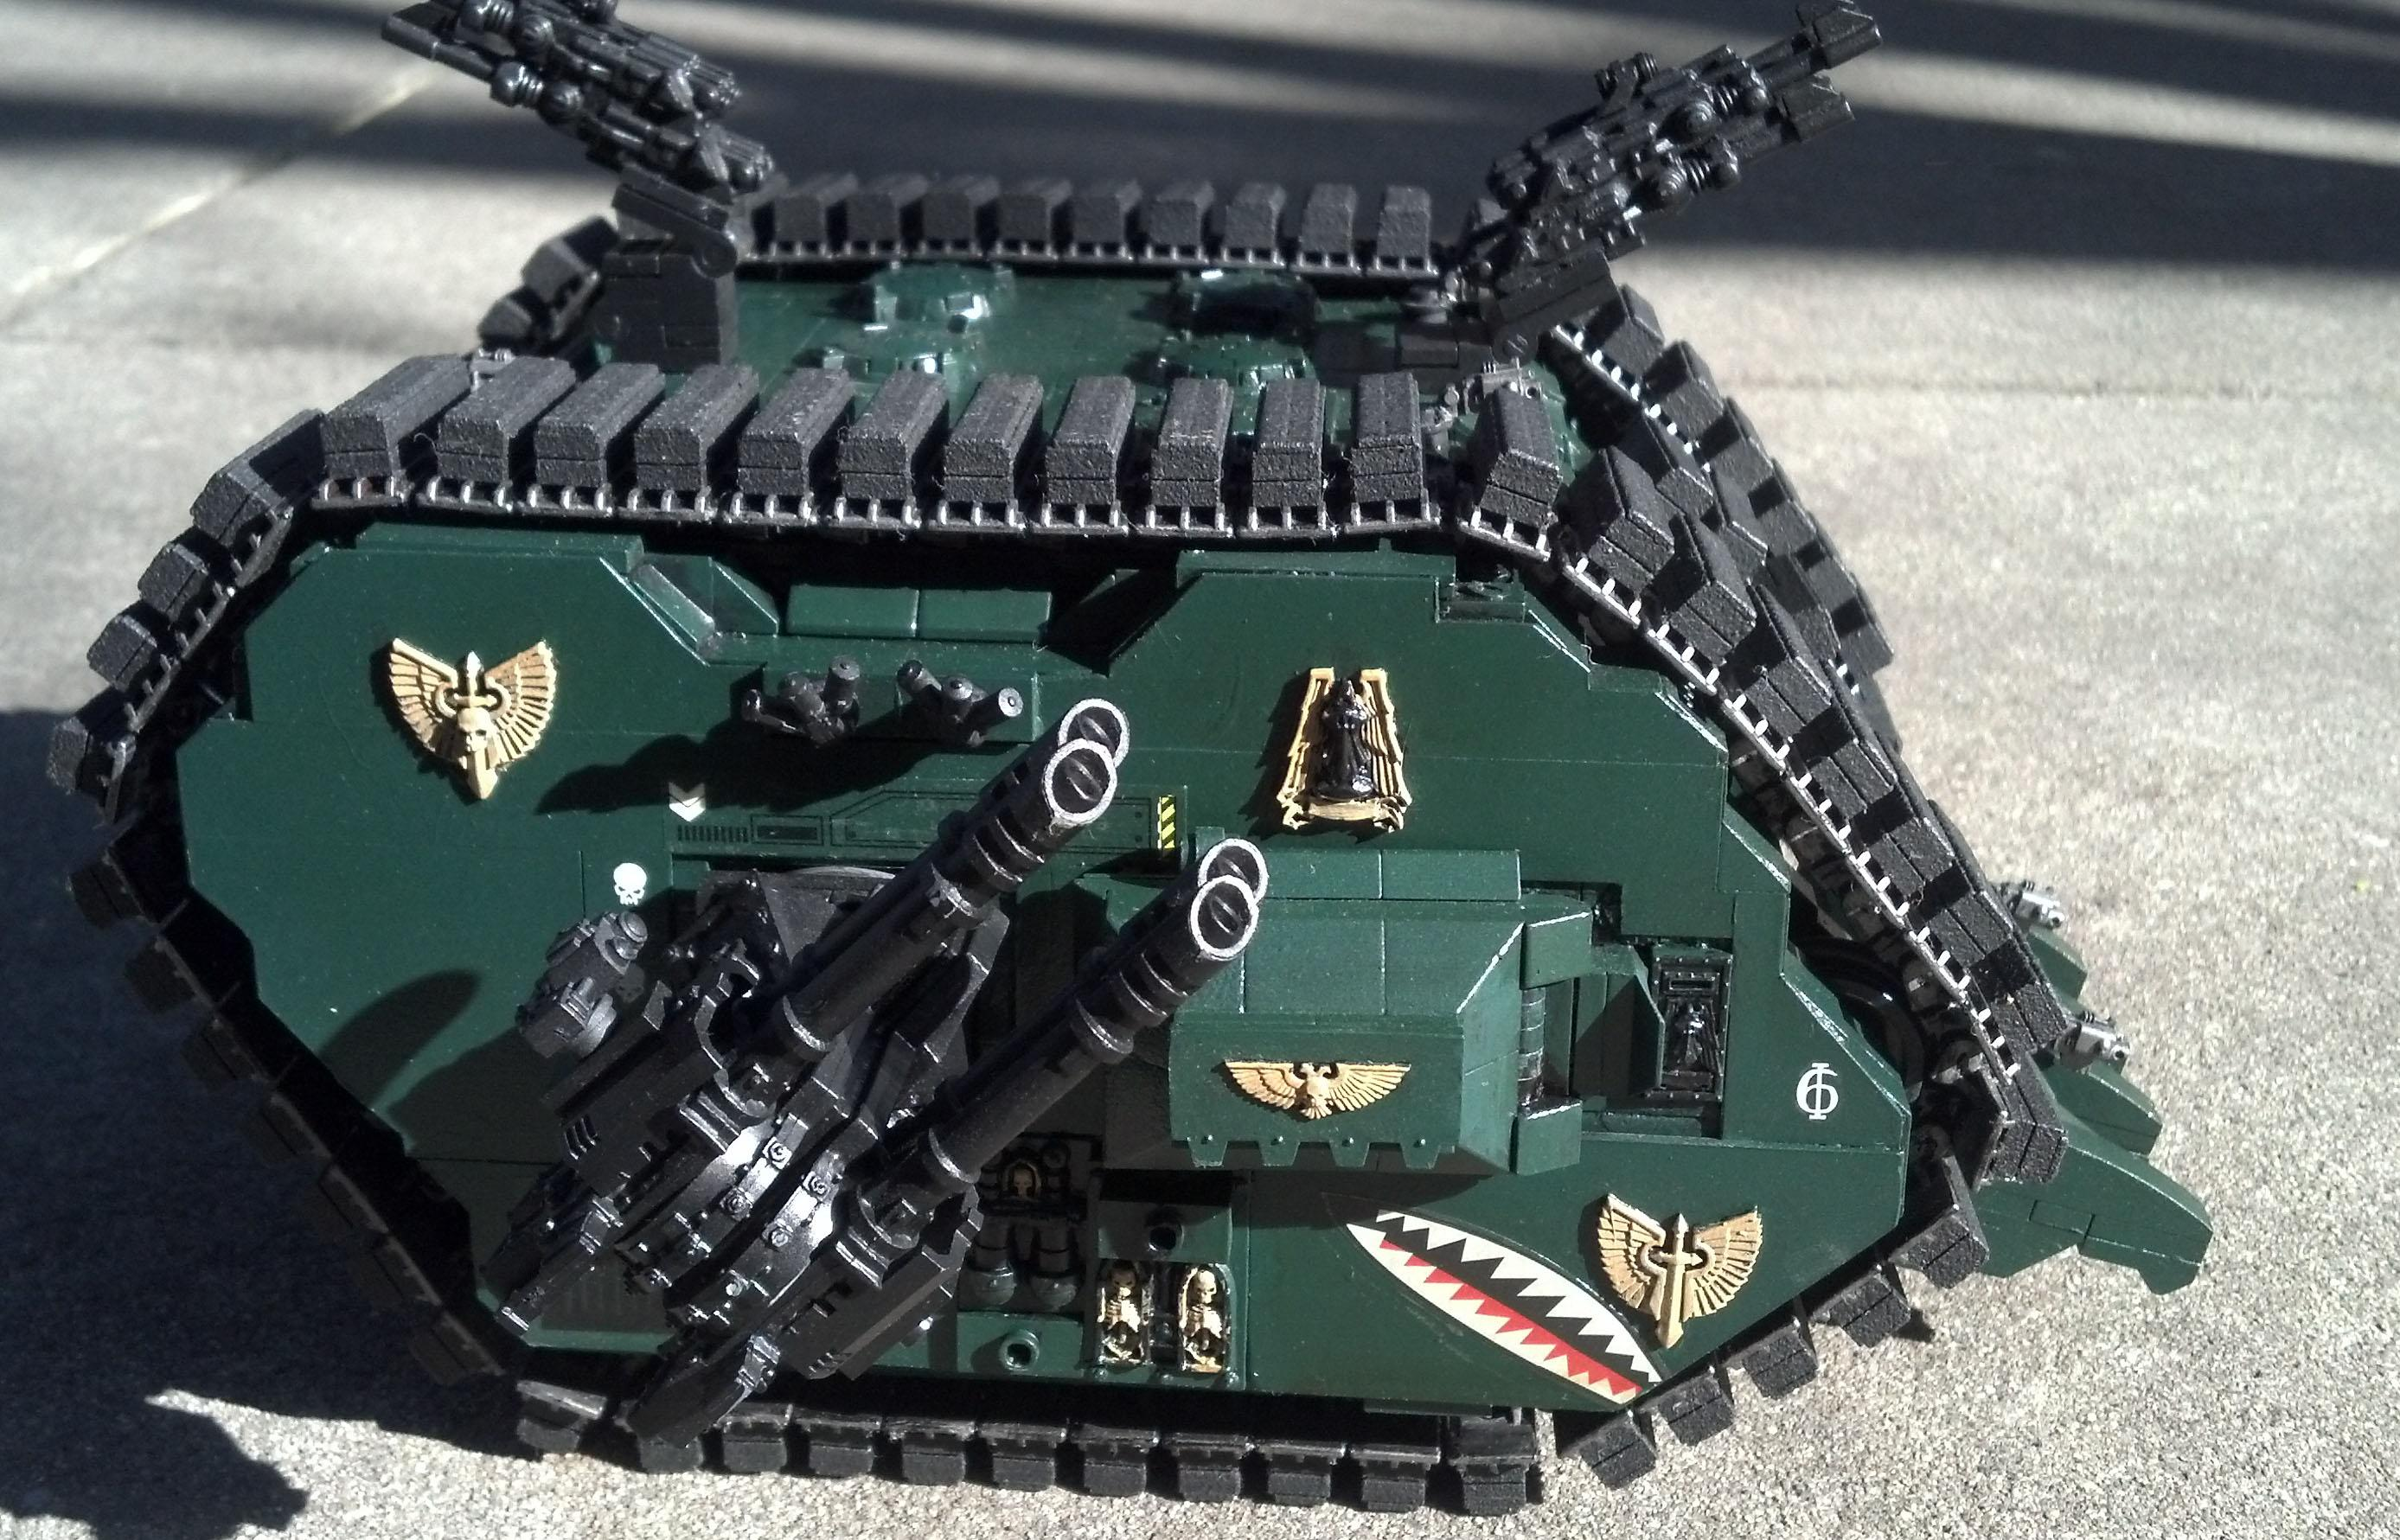 Army, Dark Angels, Human, Imperial, Imperium, Land Raider, Military, Space Marines, Super-heavy, Tank, Transport, Warhammer 40,000